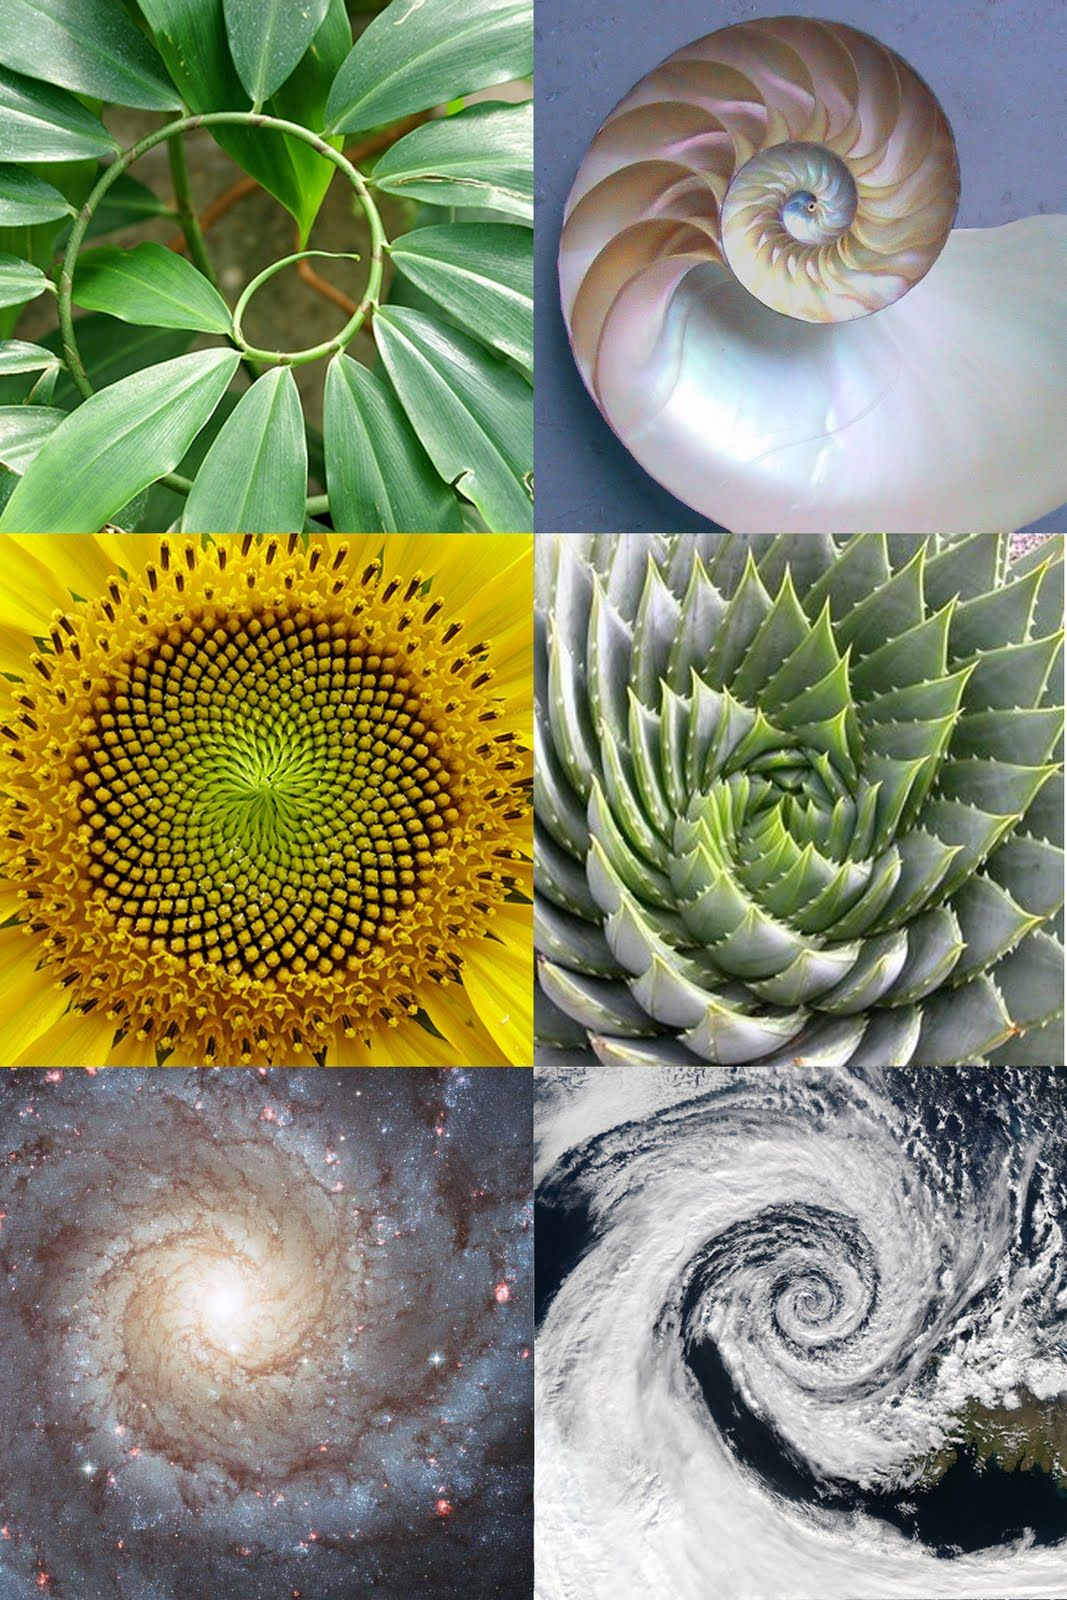 Image result for golden ratio nature 1.618